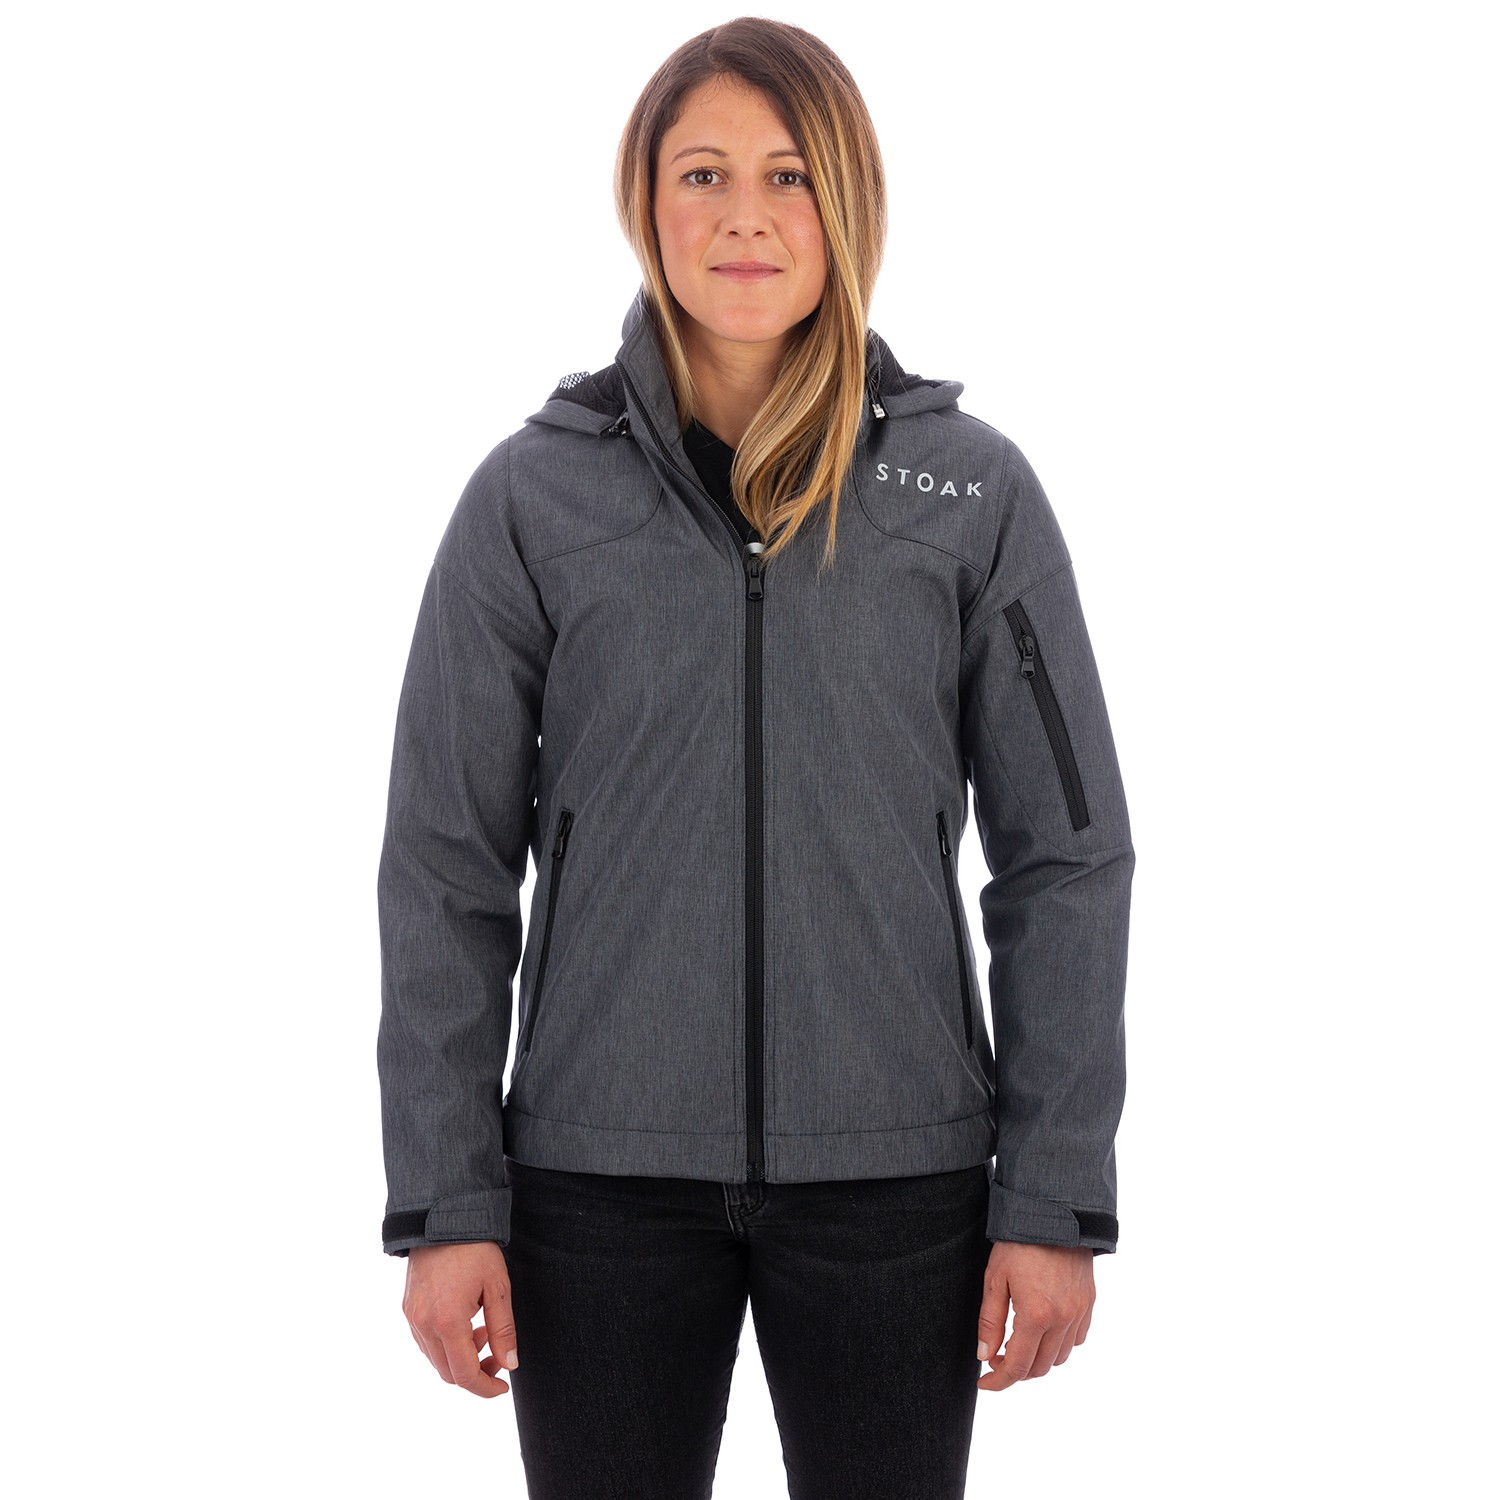 STOAK TITAN Performance Softshell Jacket Women